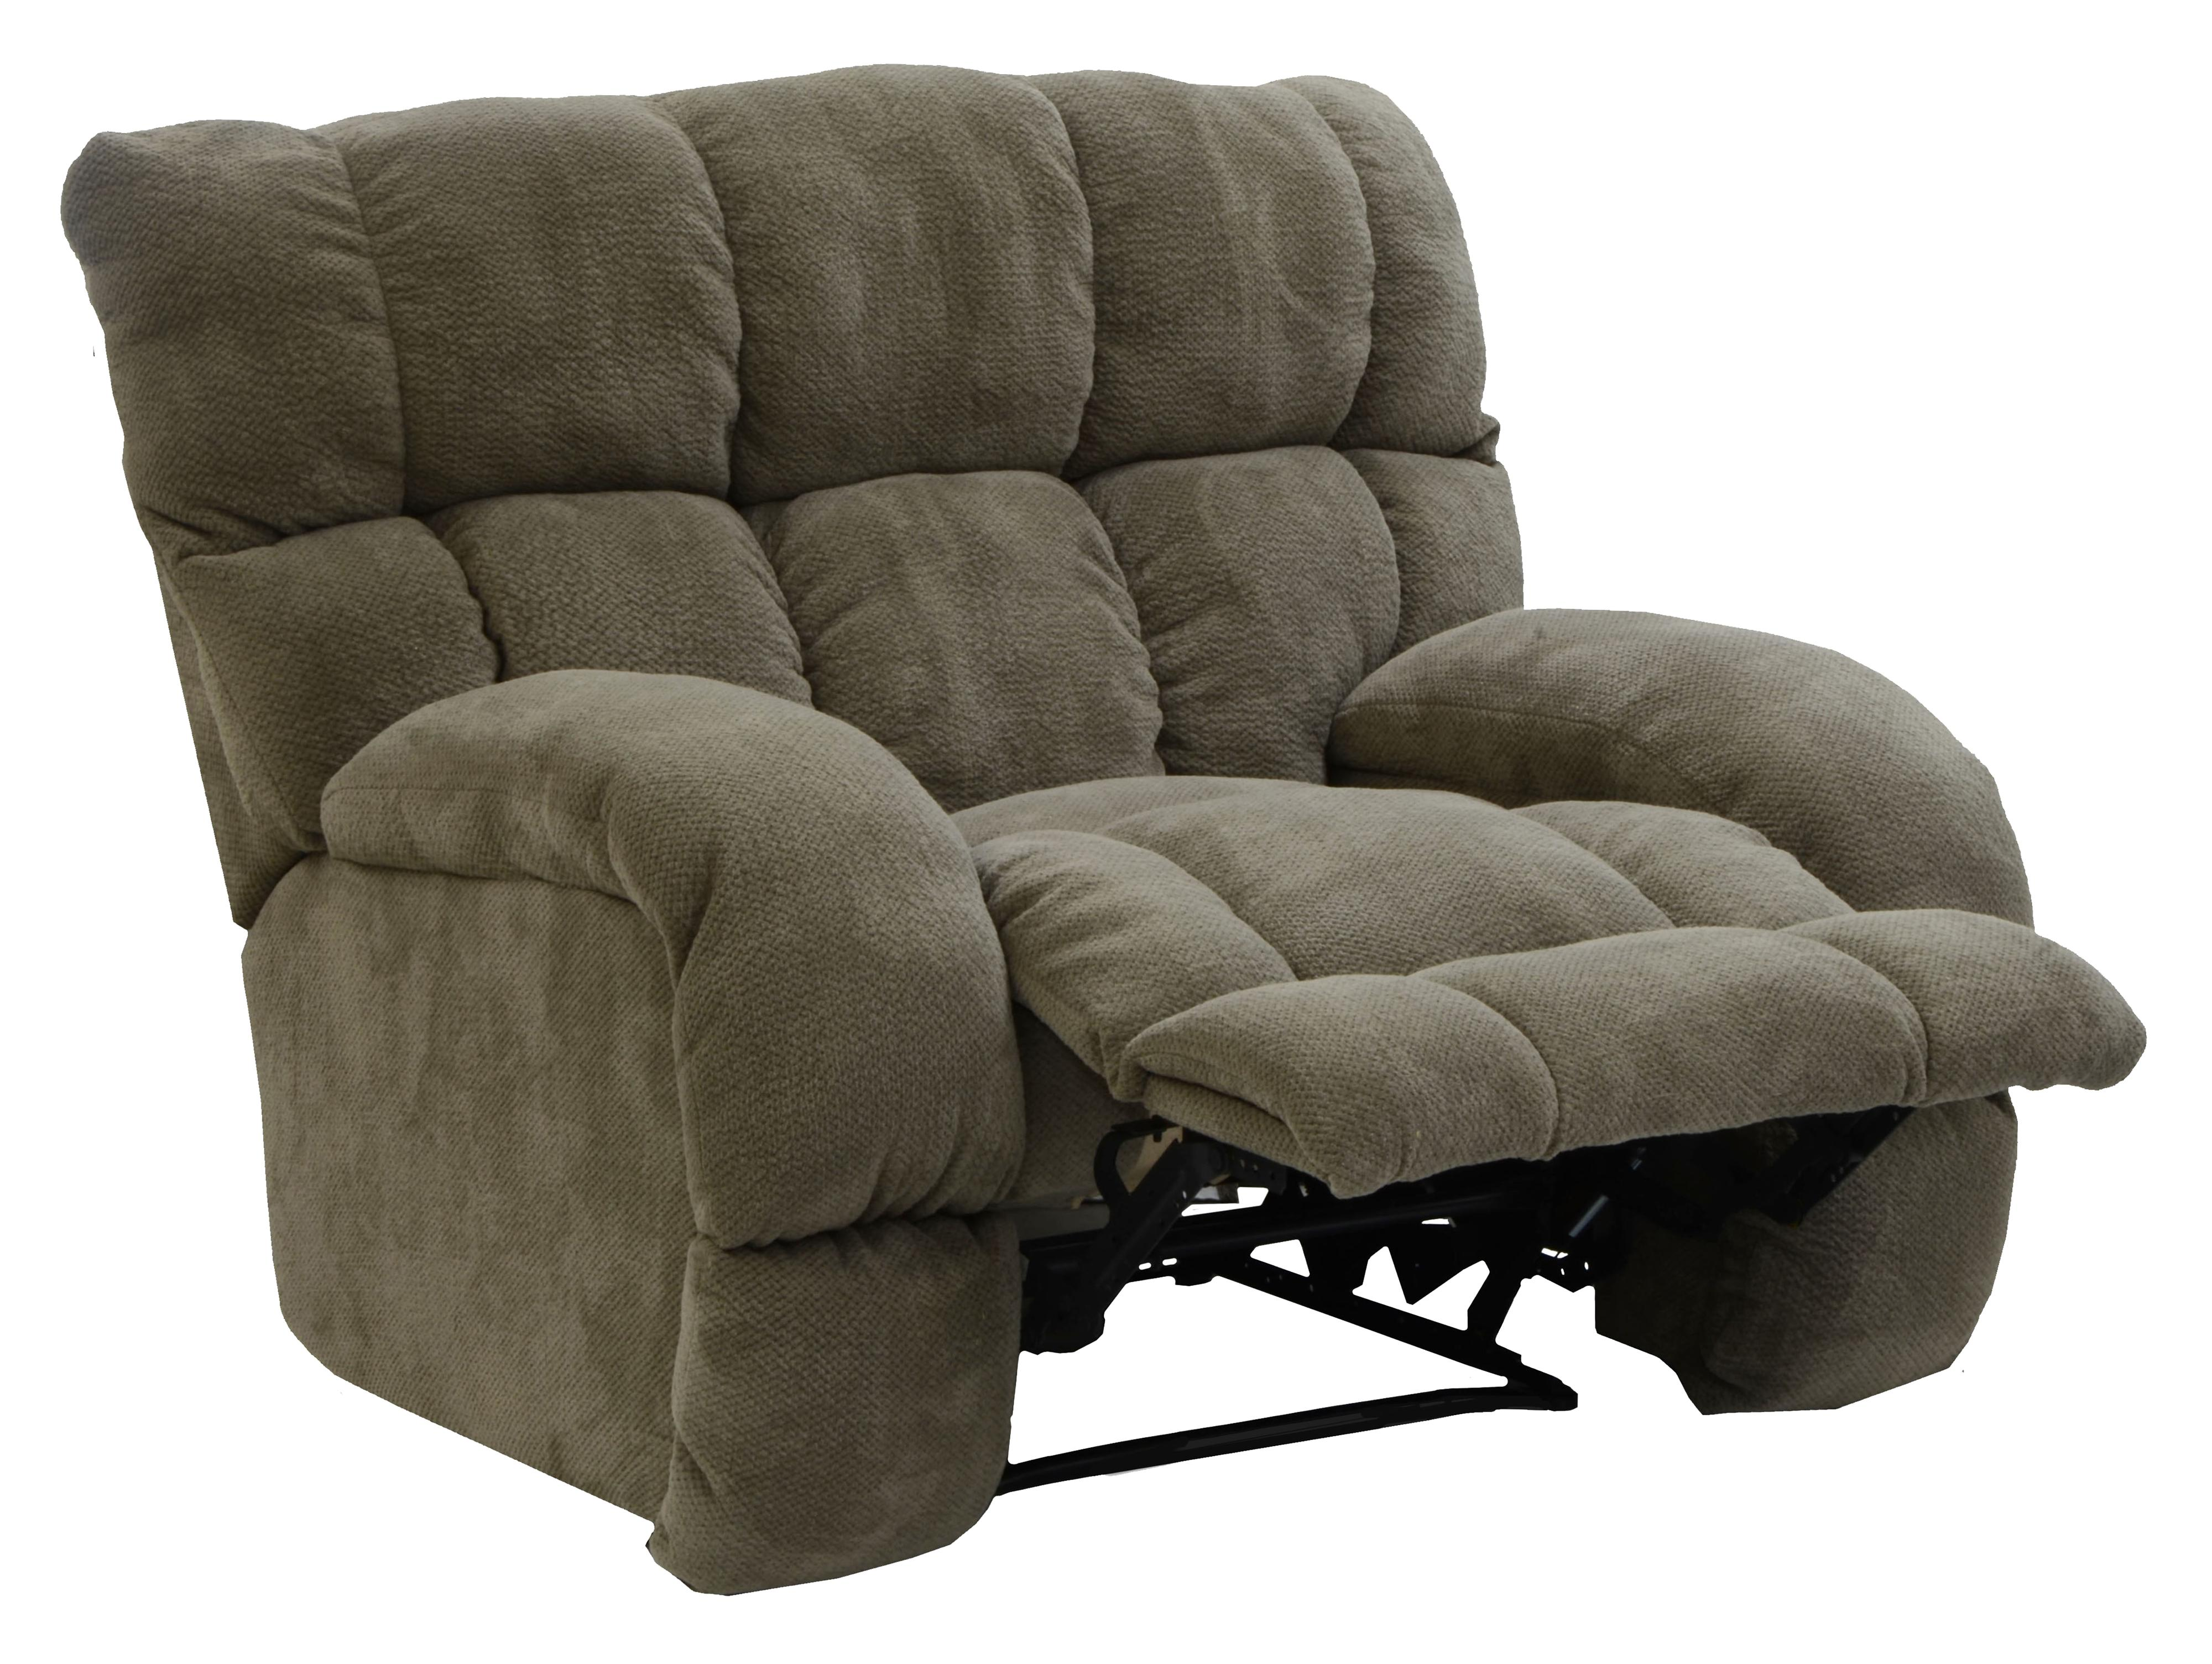 lay flat recliner chairs posture seat wedge catnapper siesta with extra wide